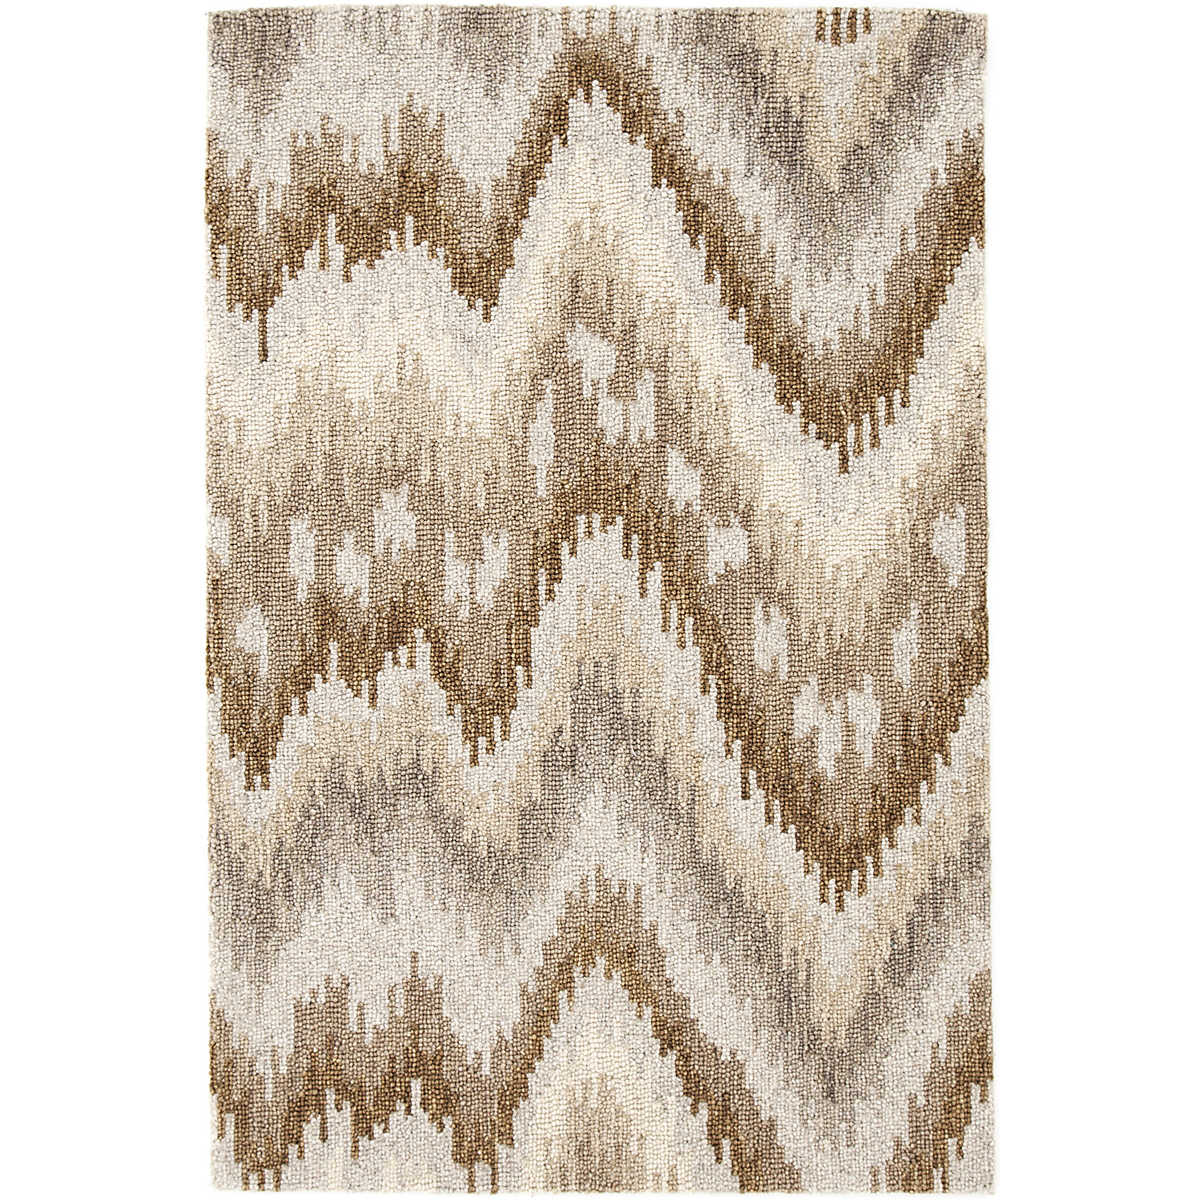 quite leather rug dining hand house room collection for stores using beneficial rugs and wool area design western berber woven fur your is brown in rustic cream shag